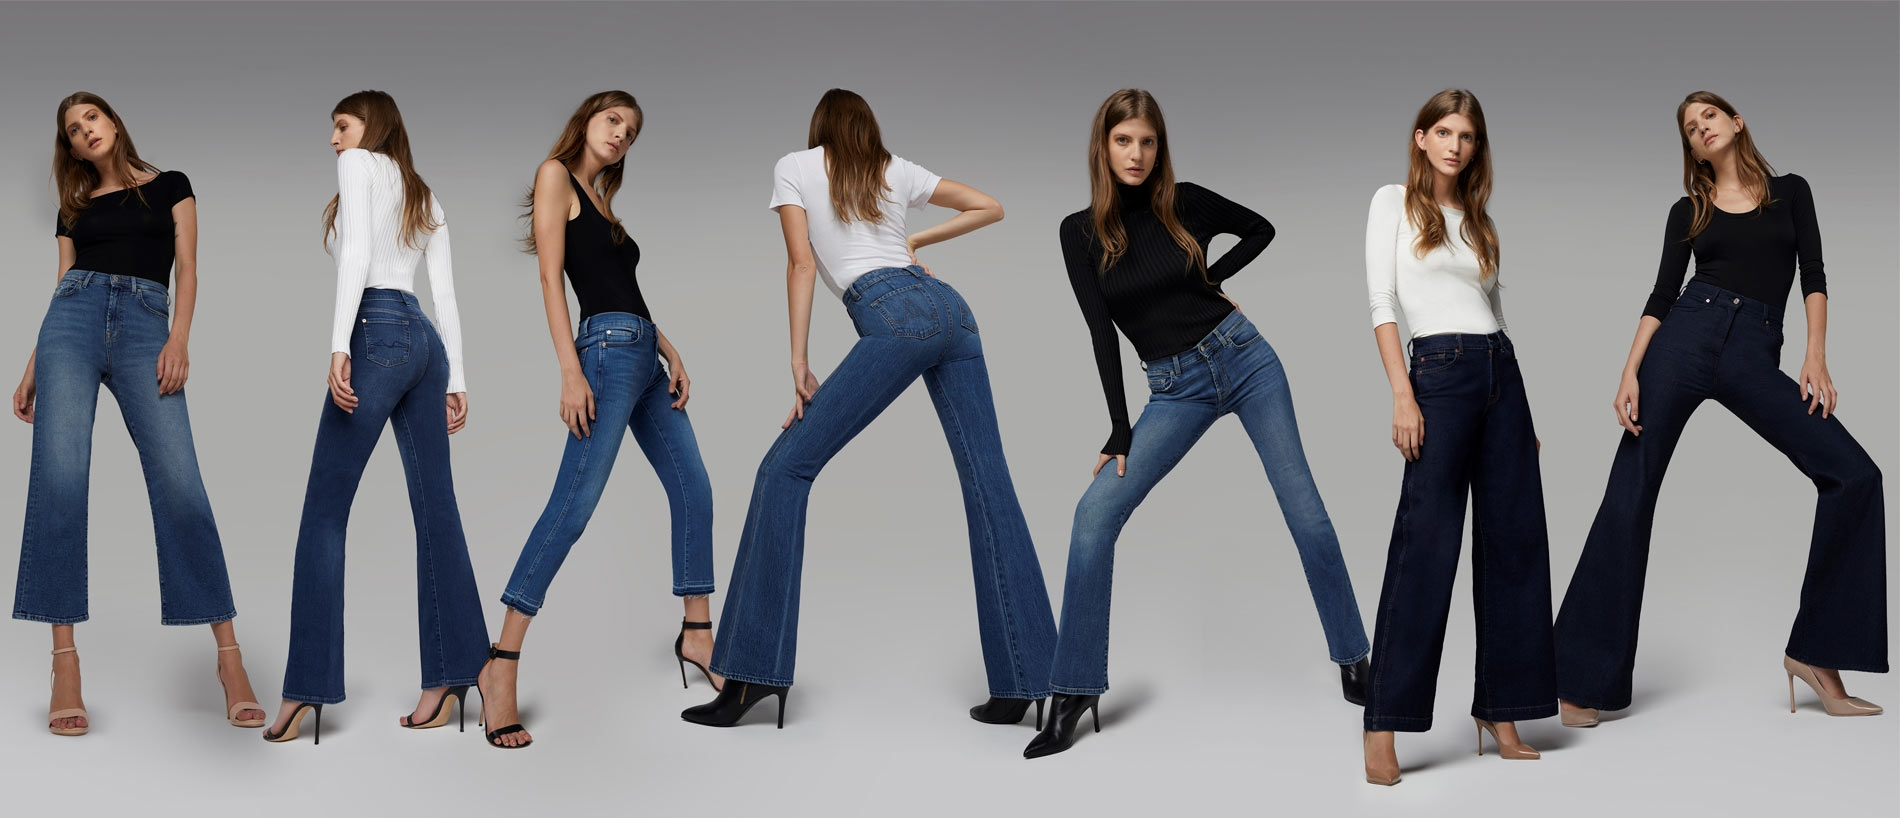 7 For all Mankind Jeans, Denim